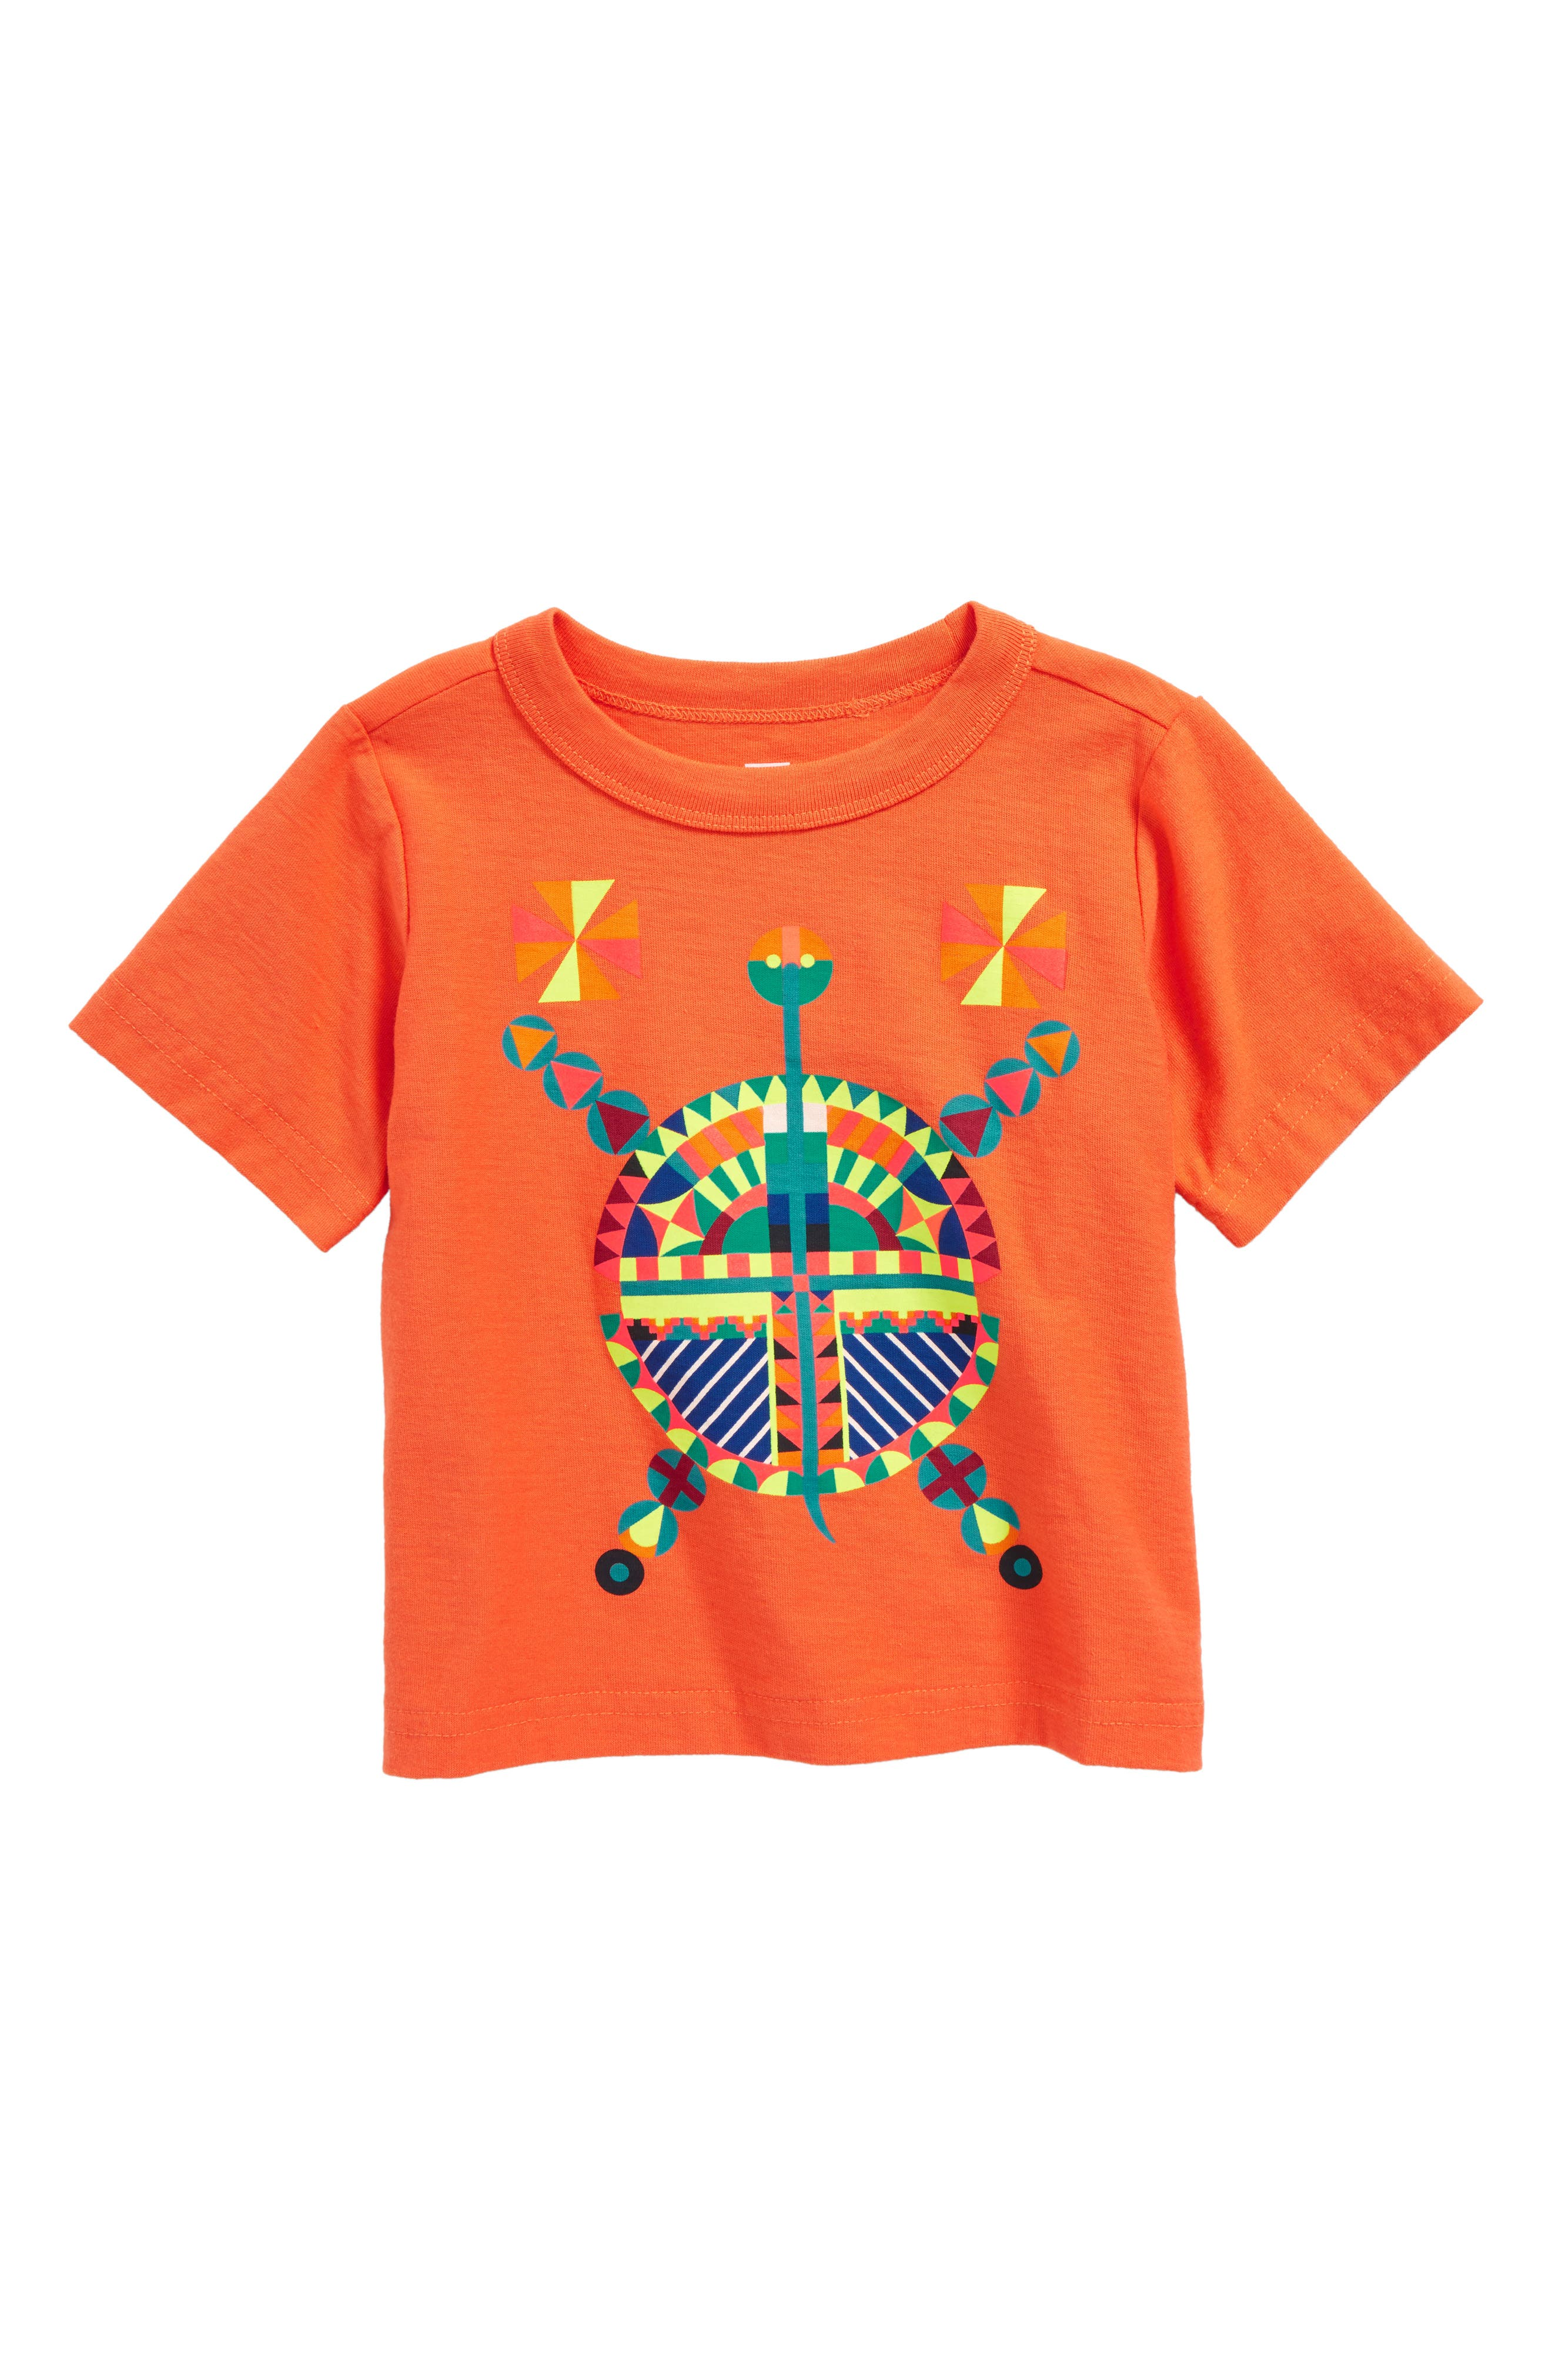 Alternate Image 1 Selected - Tea Collection Thunder Bringer Graphic T-Shirt (Baby Boys)